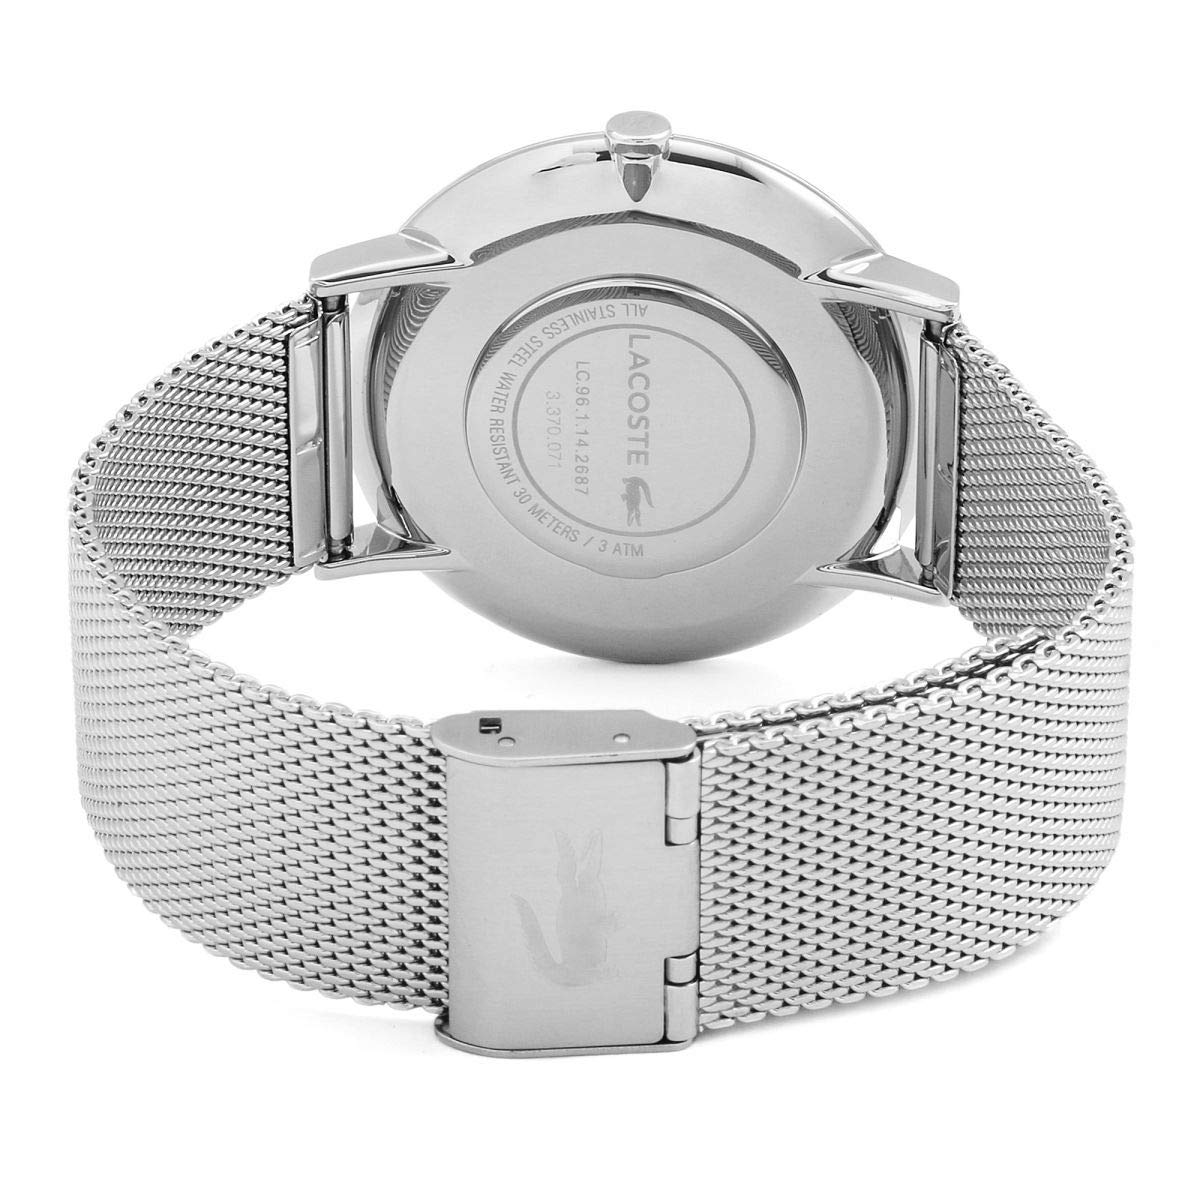 Amazon.com: Lacoste Mens Moon 2010900 Silver Stainless-Steel Quartz Fashion Watch: Lacoste: Watches